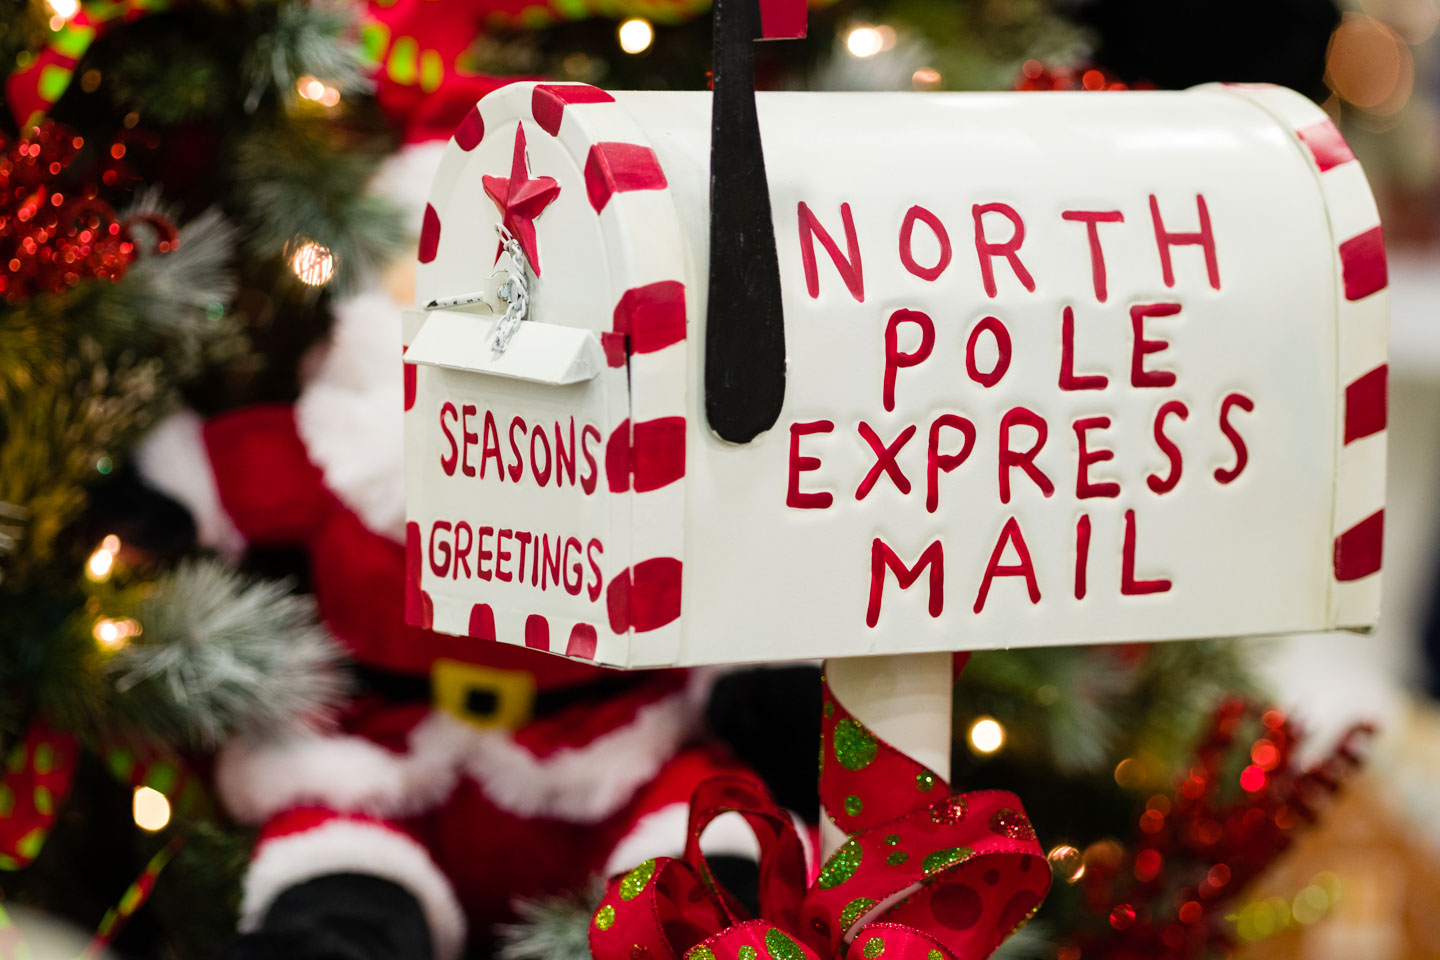 North Pole Express Mail